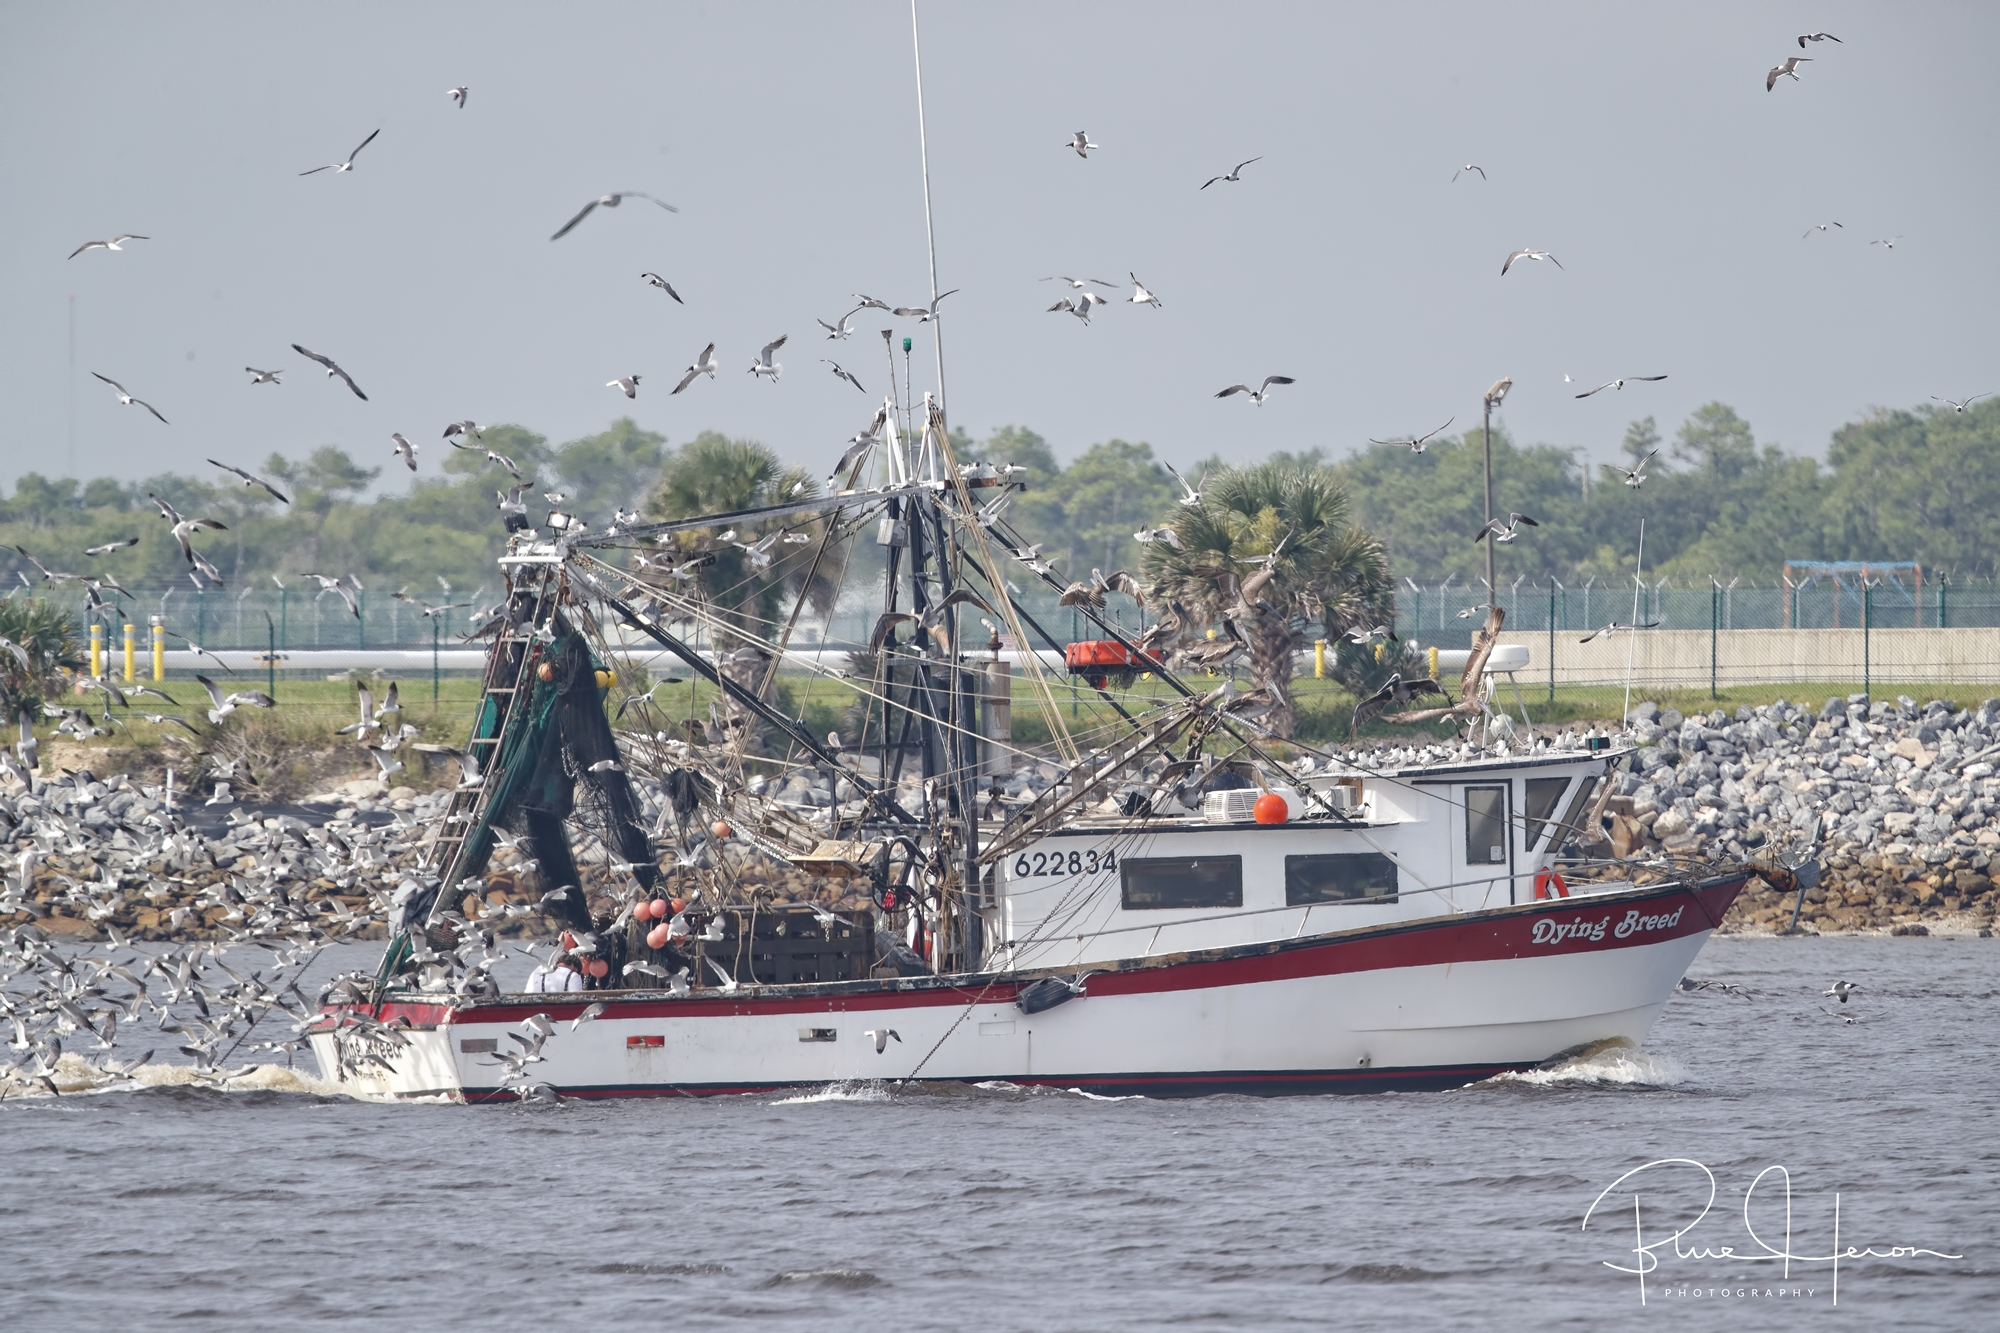 Dying Breed , a Mayport Shrimp Boat returns to port with a loyal following. Unfortunately these shrimpers are becoming dying breeds.